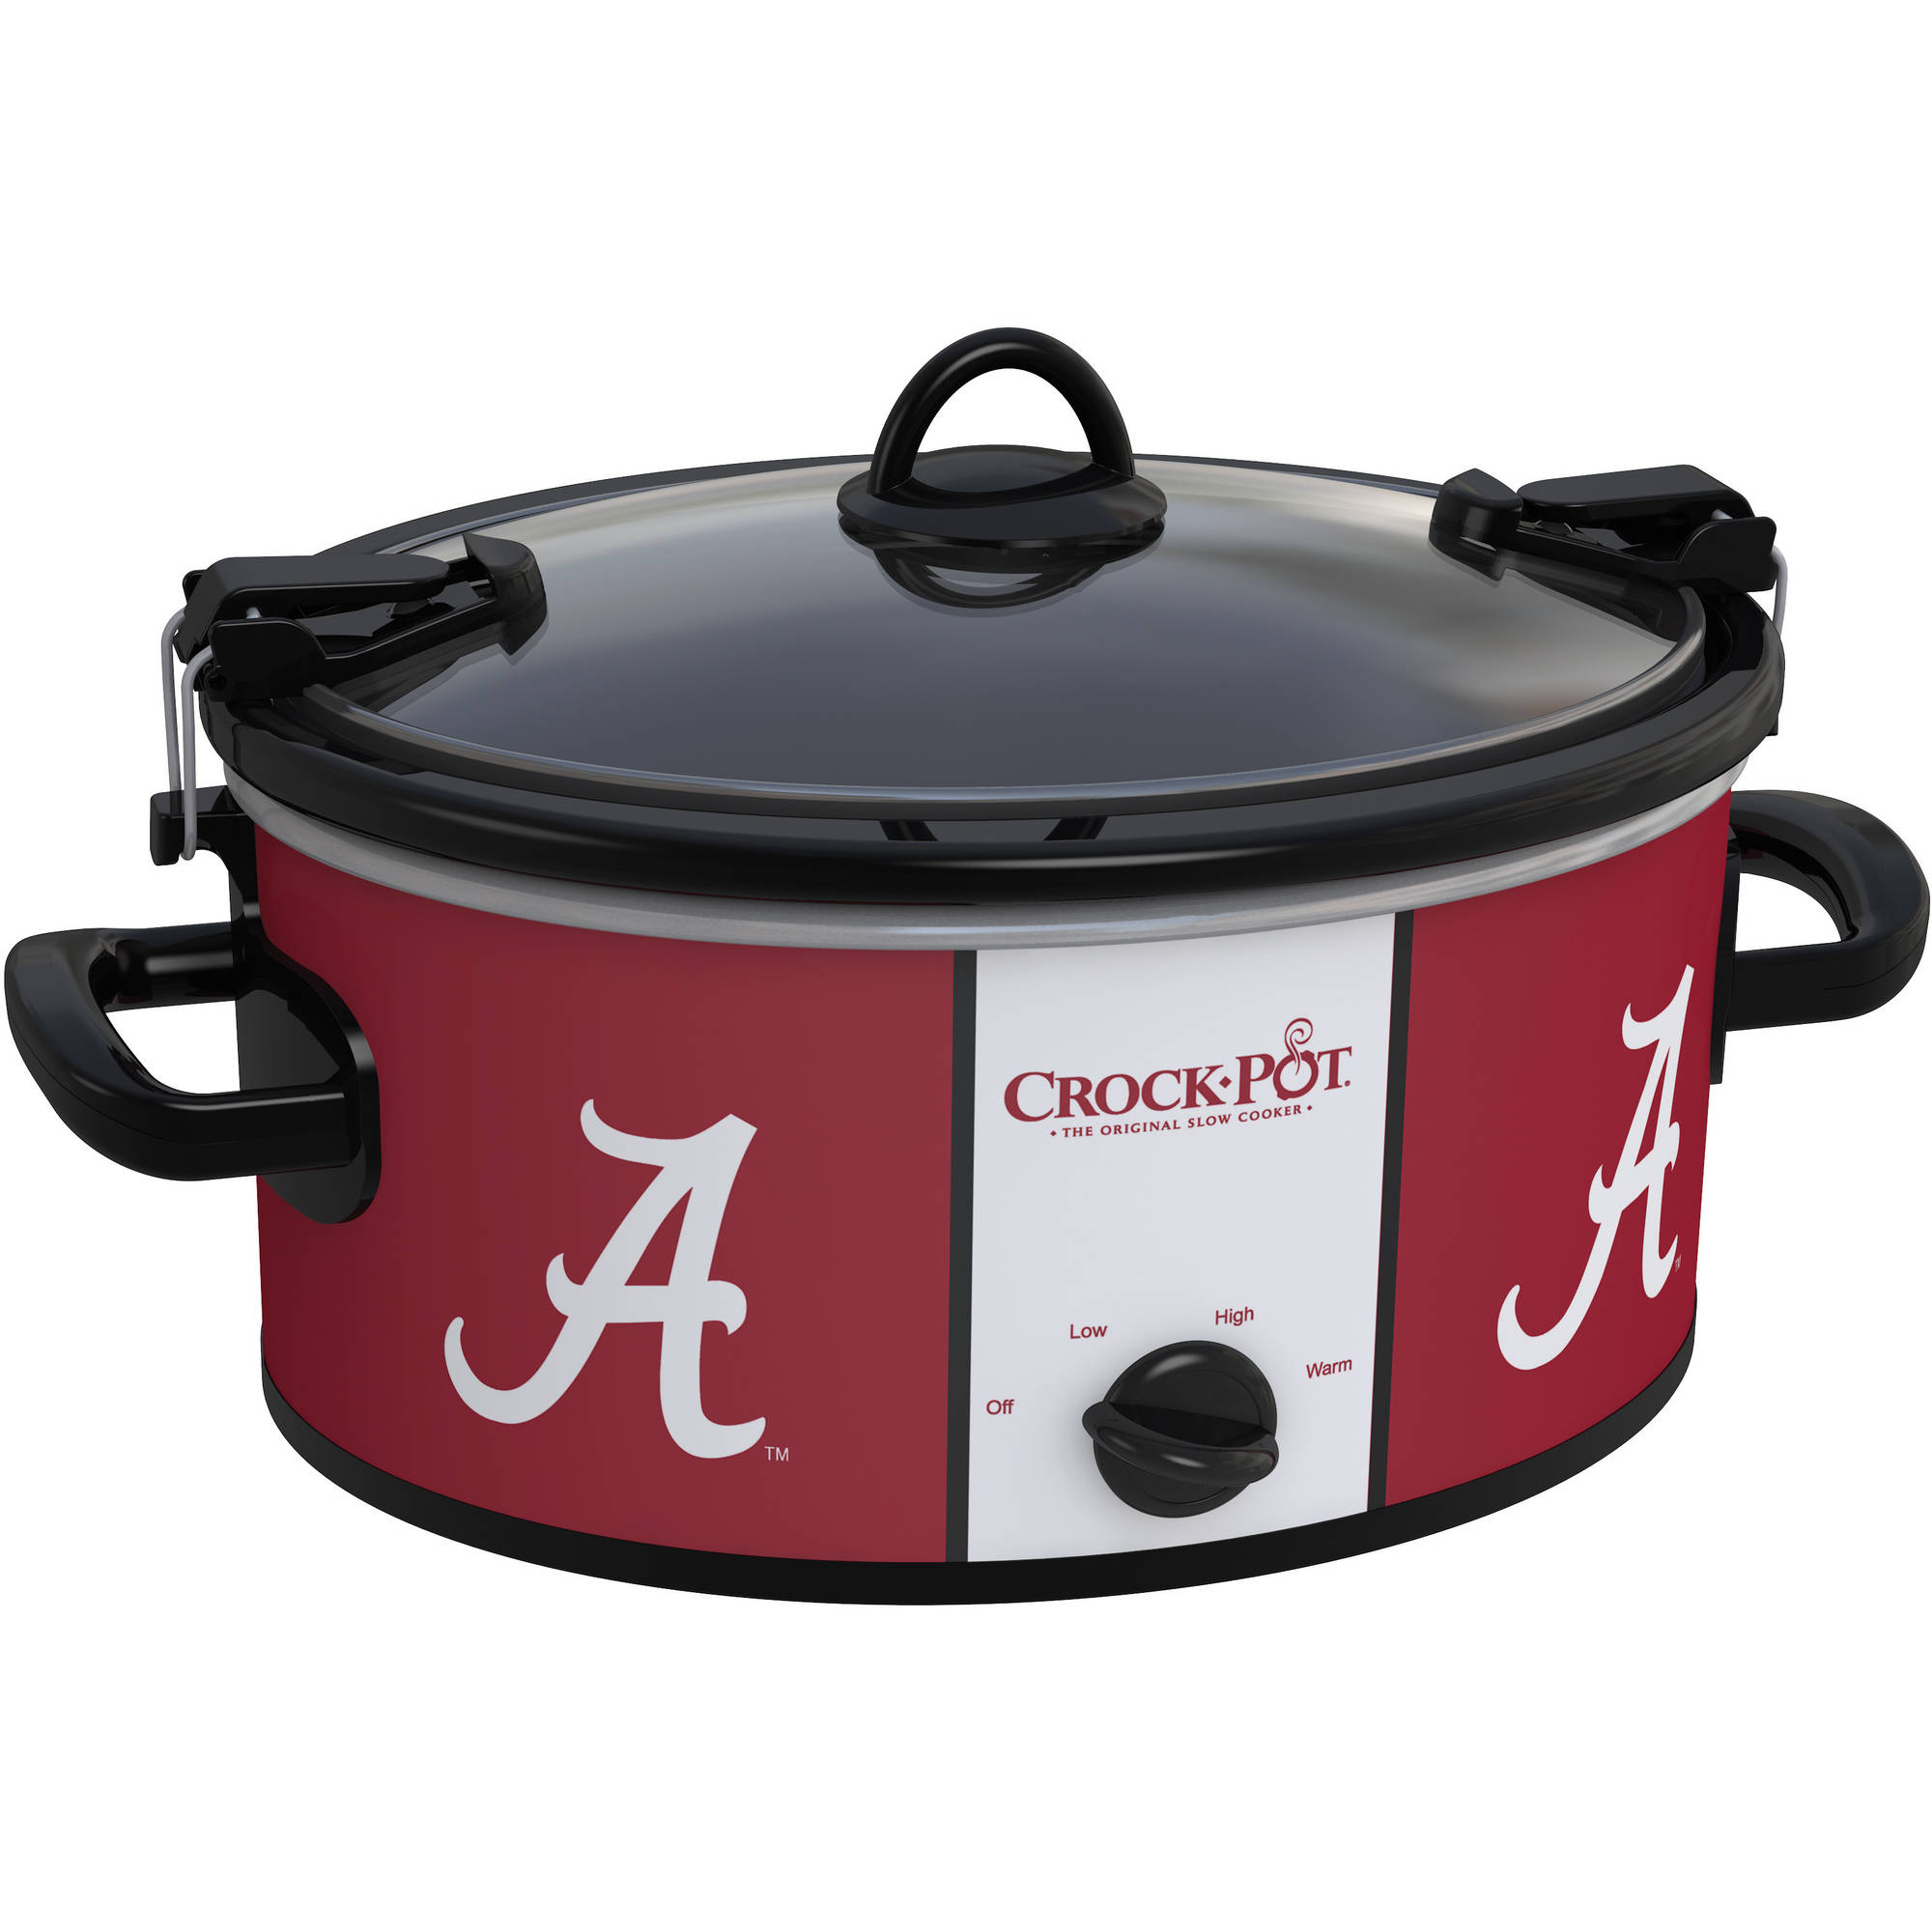 Crock Pot 6 Quart Cook & Carry Kitchen Slow Cooker Warmer, Alabama Crimson Tide